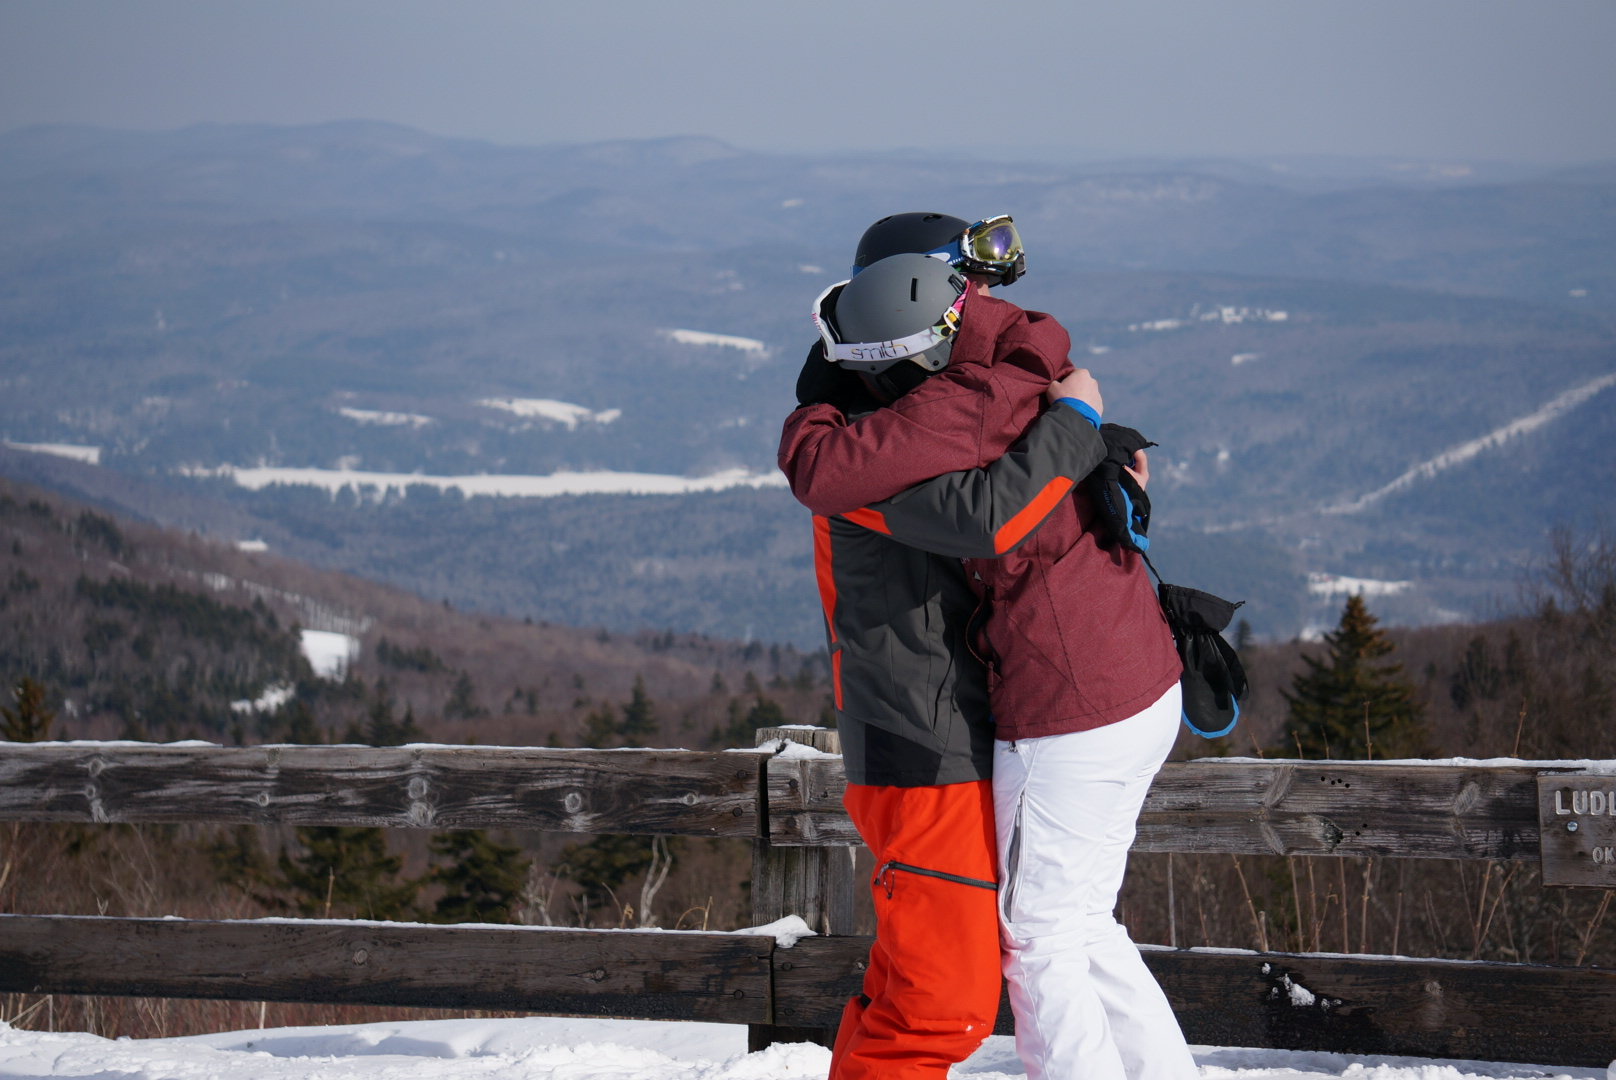 Image 6 of Sarah and Jimmy | The Perfect Mountaintop Proposal